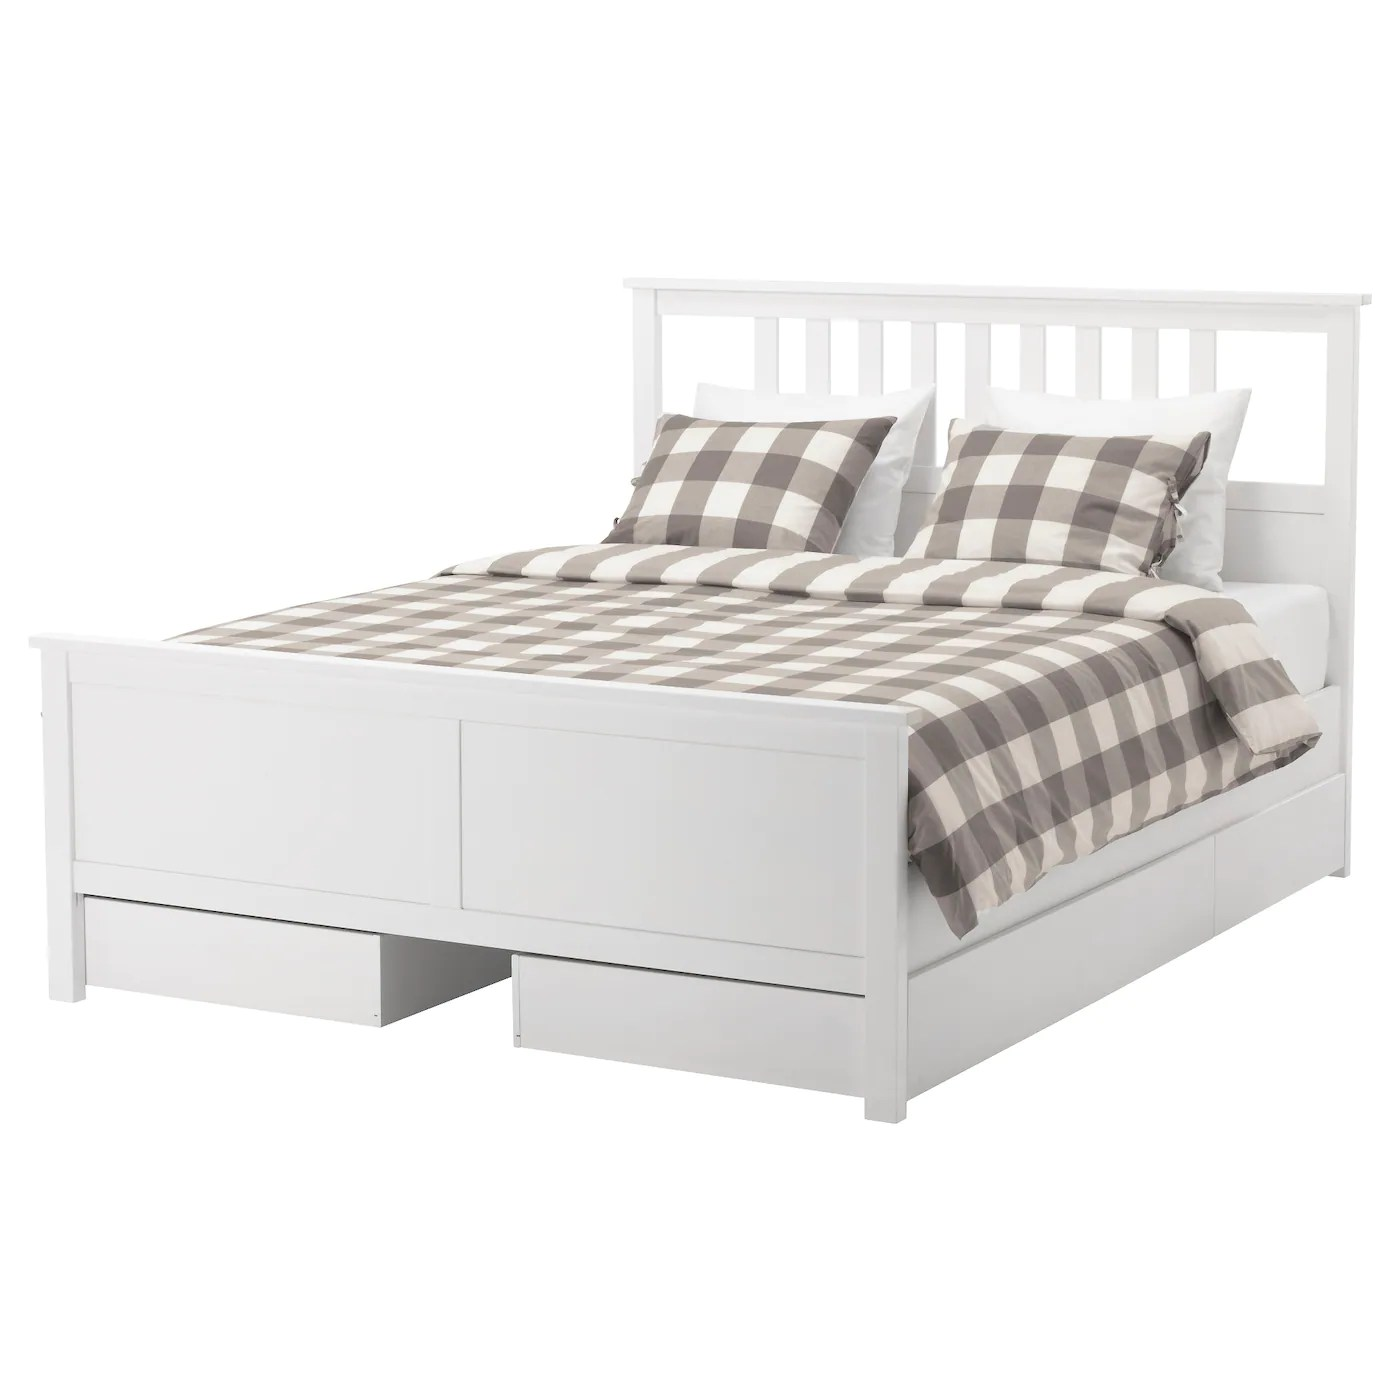 dfs california sofa dimensions king furniture gumtree melbourne hemnes bed frame with 4 storage boxes white stain luröy